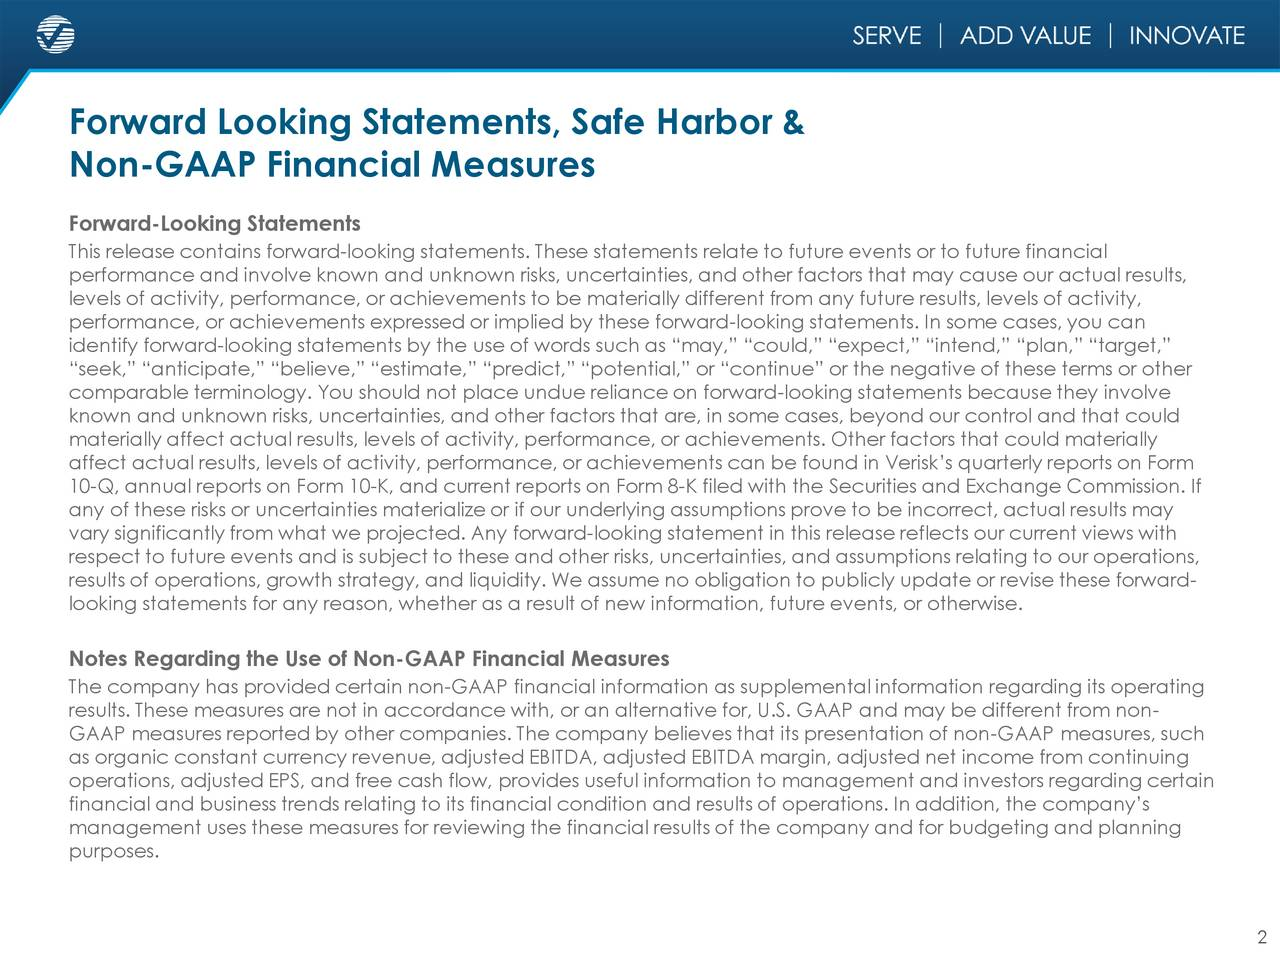 Non-GAAP Financial Measures Forward-Looking Statements This release contains forward-looking statements. These statements relate to future events or to future financial performance and involve known and unknown risks, uncertainties, and other factors that may cause our actual results, levels of activity, performance, or achievements to be materially different from any future results, levels of activity, performance, or achievements expressed or implied by these forward-looking statements. In some cases, you can identify forward-looking statements by the use of words such as may, could, expect, intend, plan, target, seek, anticipate, believe, estimate, predict, potential, or continue or the negative of these terms or other comparable terminology. You should not place undue reliance on forward-looking statements because they involve known and unknown risks, uncertainties, and other factors that are, in some cases, beyond our control and that could materially affect actual results, levels of activity, performance, or achievements. Other factors that could materially affect actual results, levels of activity, performance, or achievements can be found in Verisks quarterly reports on Form 10-Q, annual reports on Form 10-K, and current reports on Form 8-K filed with the Securities and Exchange Commission. If any of these risks or uncertainties materialize or if our underlying assumptions prove to be incorrect, actual results may vary significantly from what we projected. Any forward-looking statement in this release reflects our current views with respect to future events and is subject to these and other risks, uncertainties, and assumptions relating to our operations, results of operations, growth strategy, and liquidity. We assume no obligation to publicly update or revise these forward- looking statements for any reason, whether as a result of new information, future events, or otherwise. Notes Regarding the Use of Non-GAAP Financial Measures The company has provided c